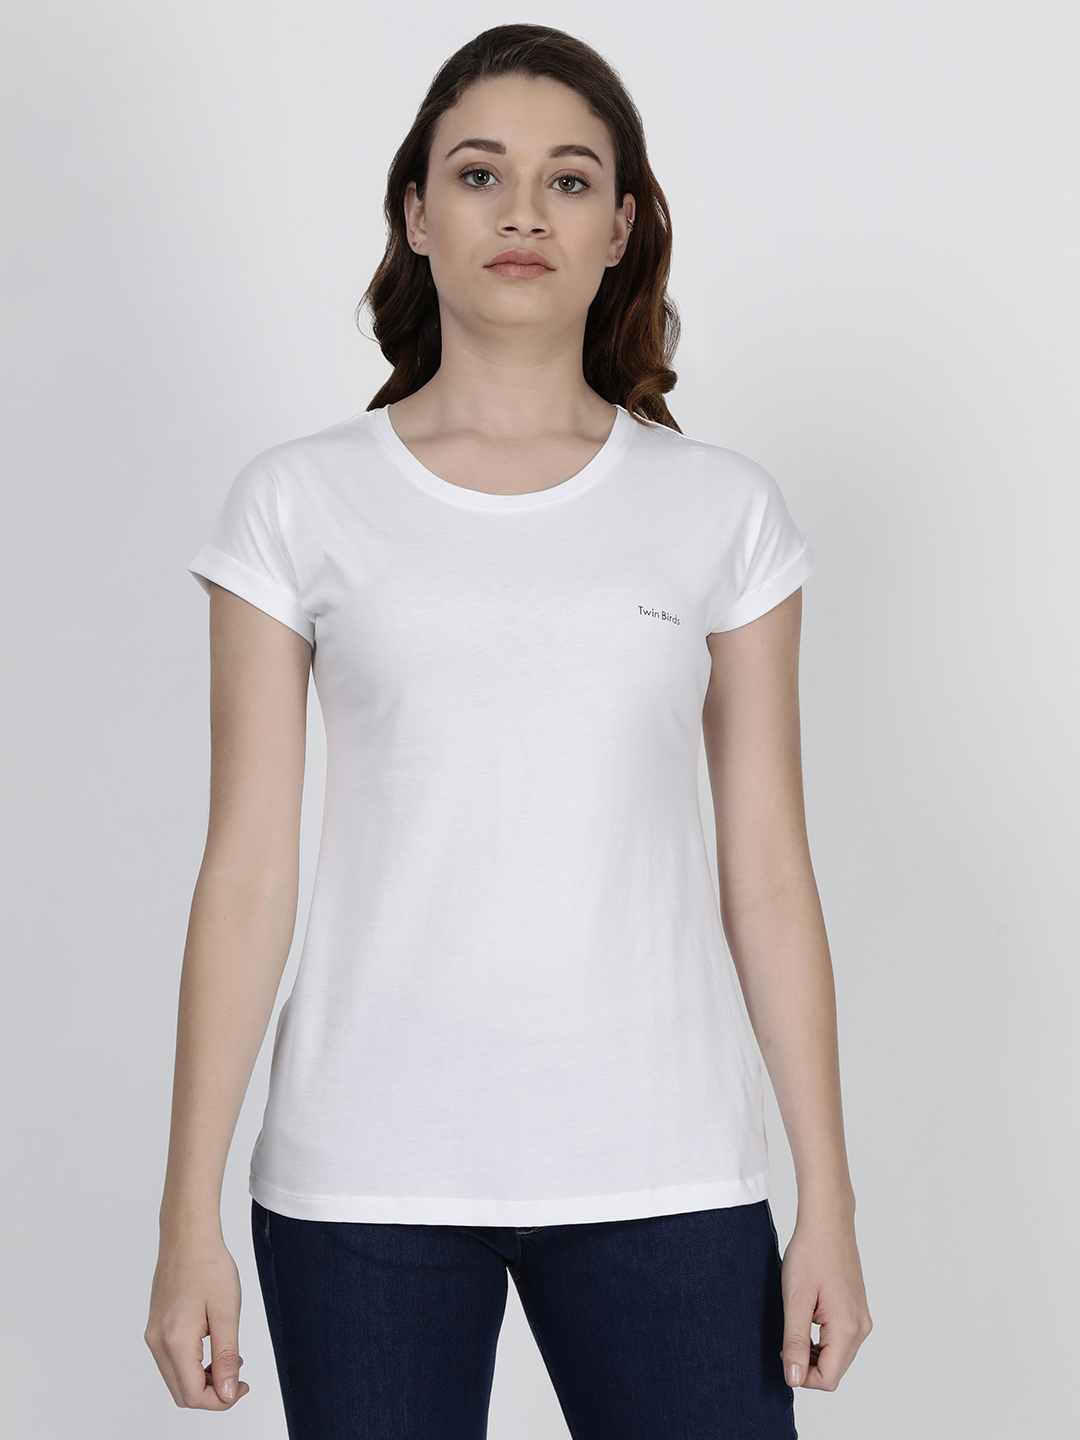 Twin Birds   Twinbirds Pearl White Women Relaxed Fit Branded Tee